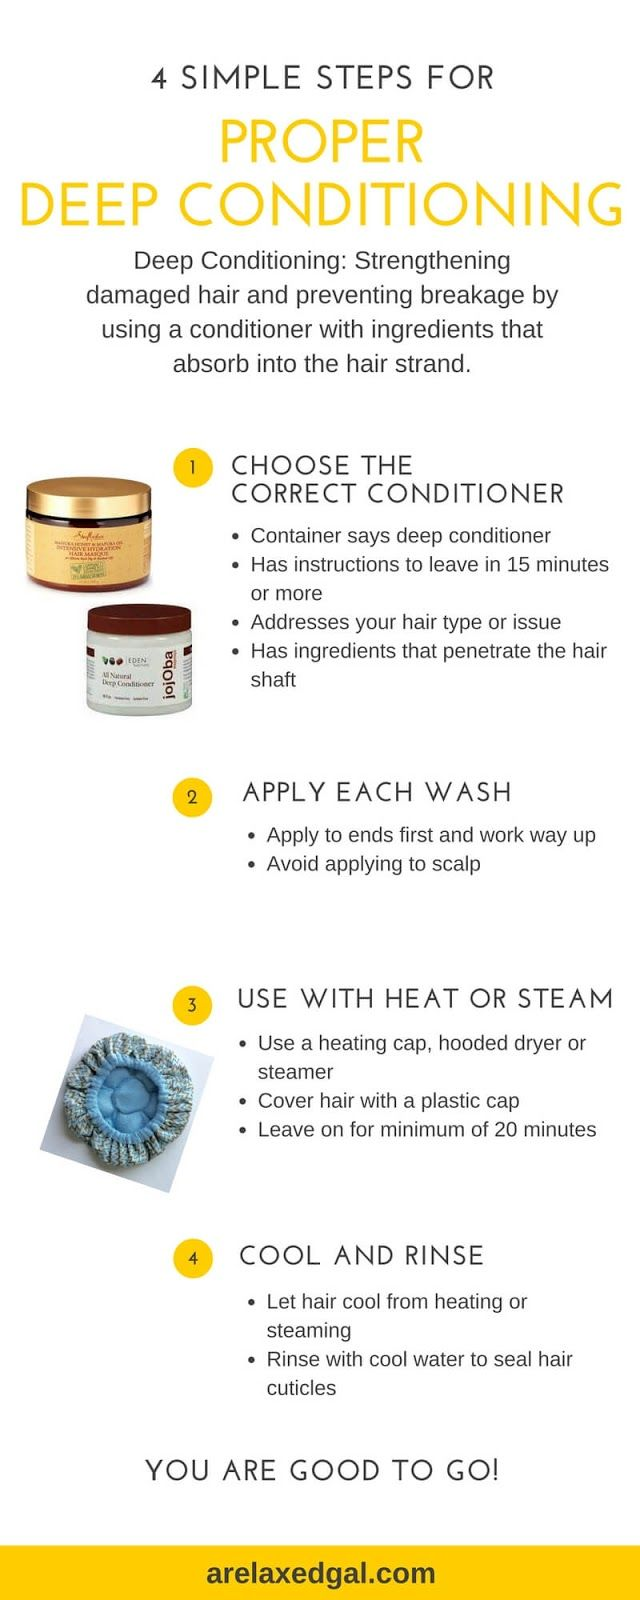 Deep conditioning doesn't need to take a lot of work. See the four simple steps for proper deep conditioning.   arelaxedgal.com